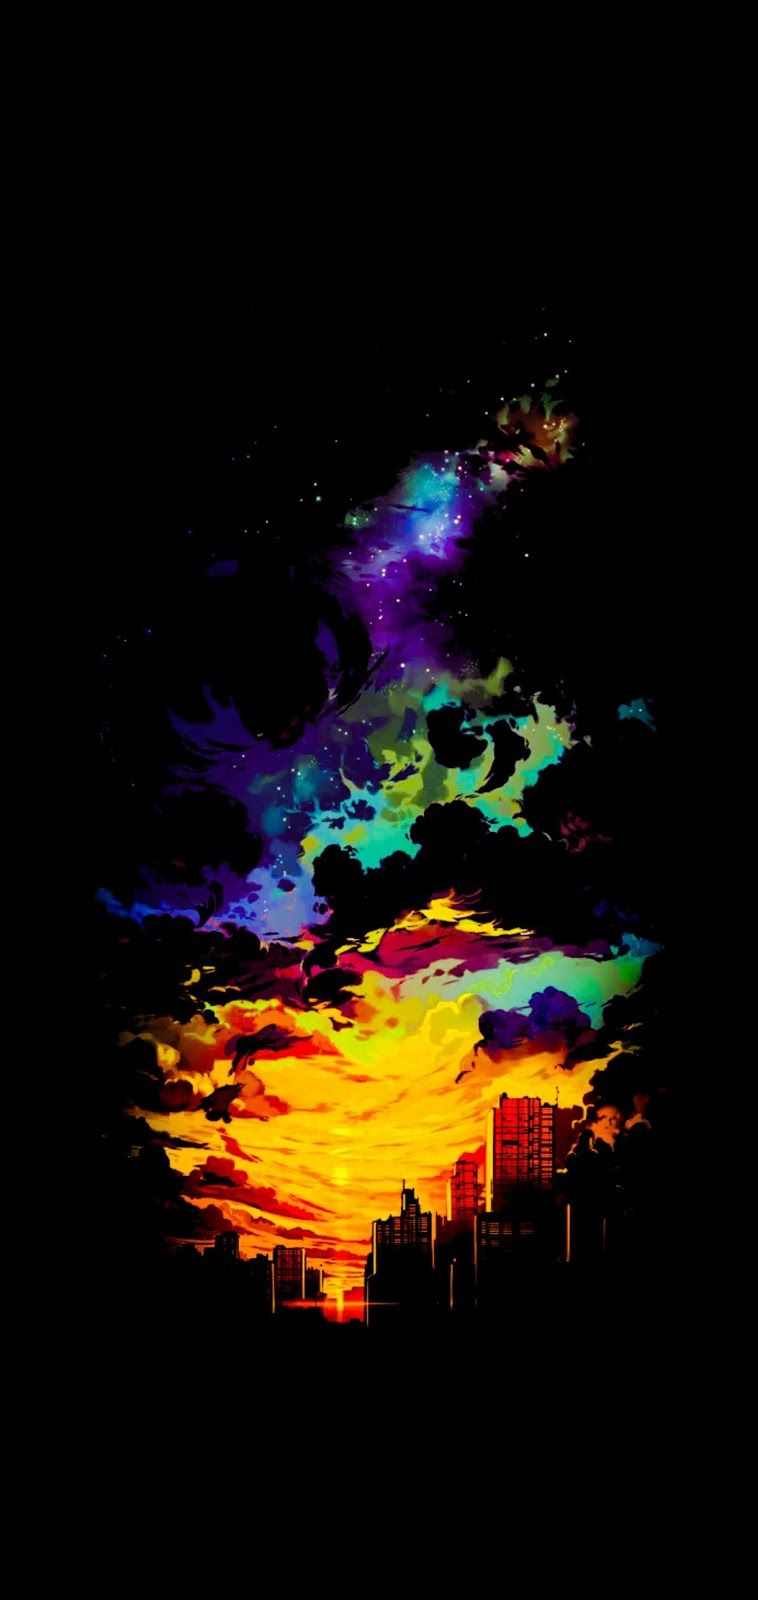 Amoled Anime Sunset Wallpaper Iphone Android Background Followme Mkbhd Wallpapers Samsung Galaxy Wallpaper Landscape Wallpaper